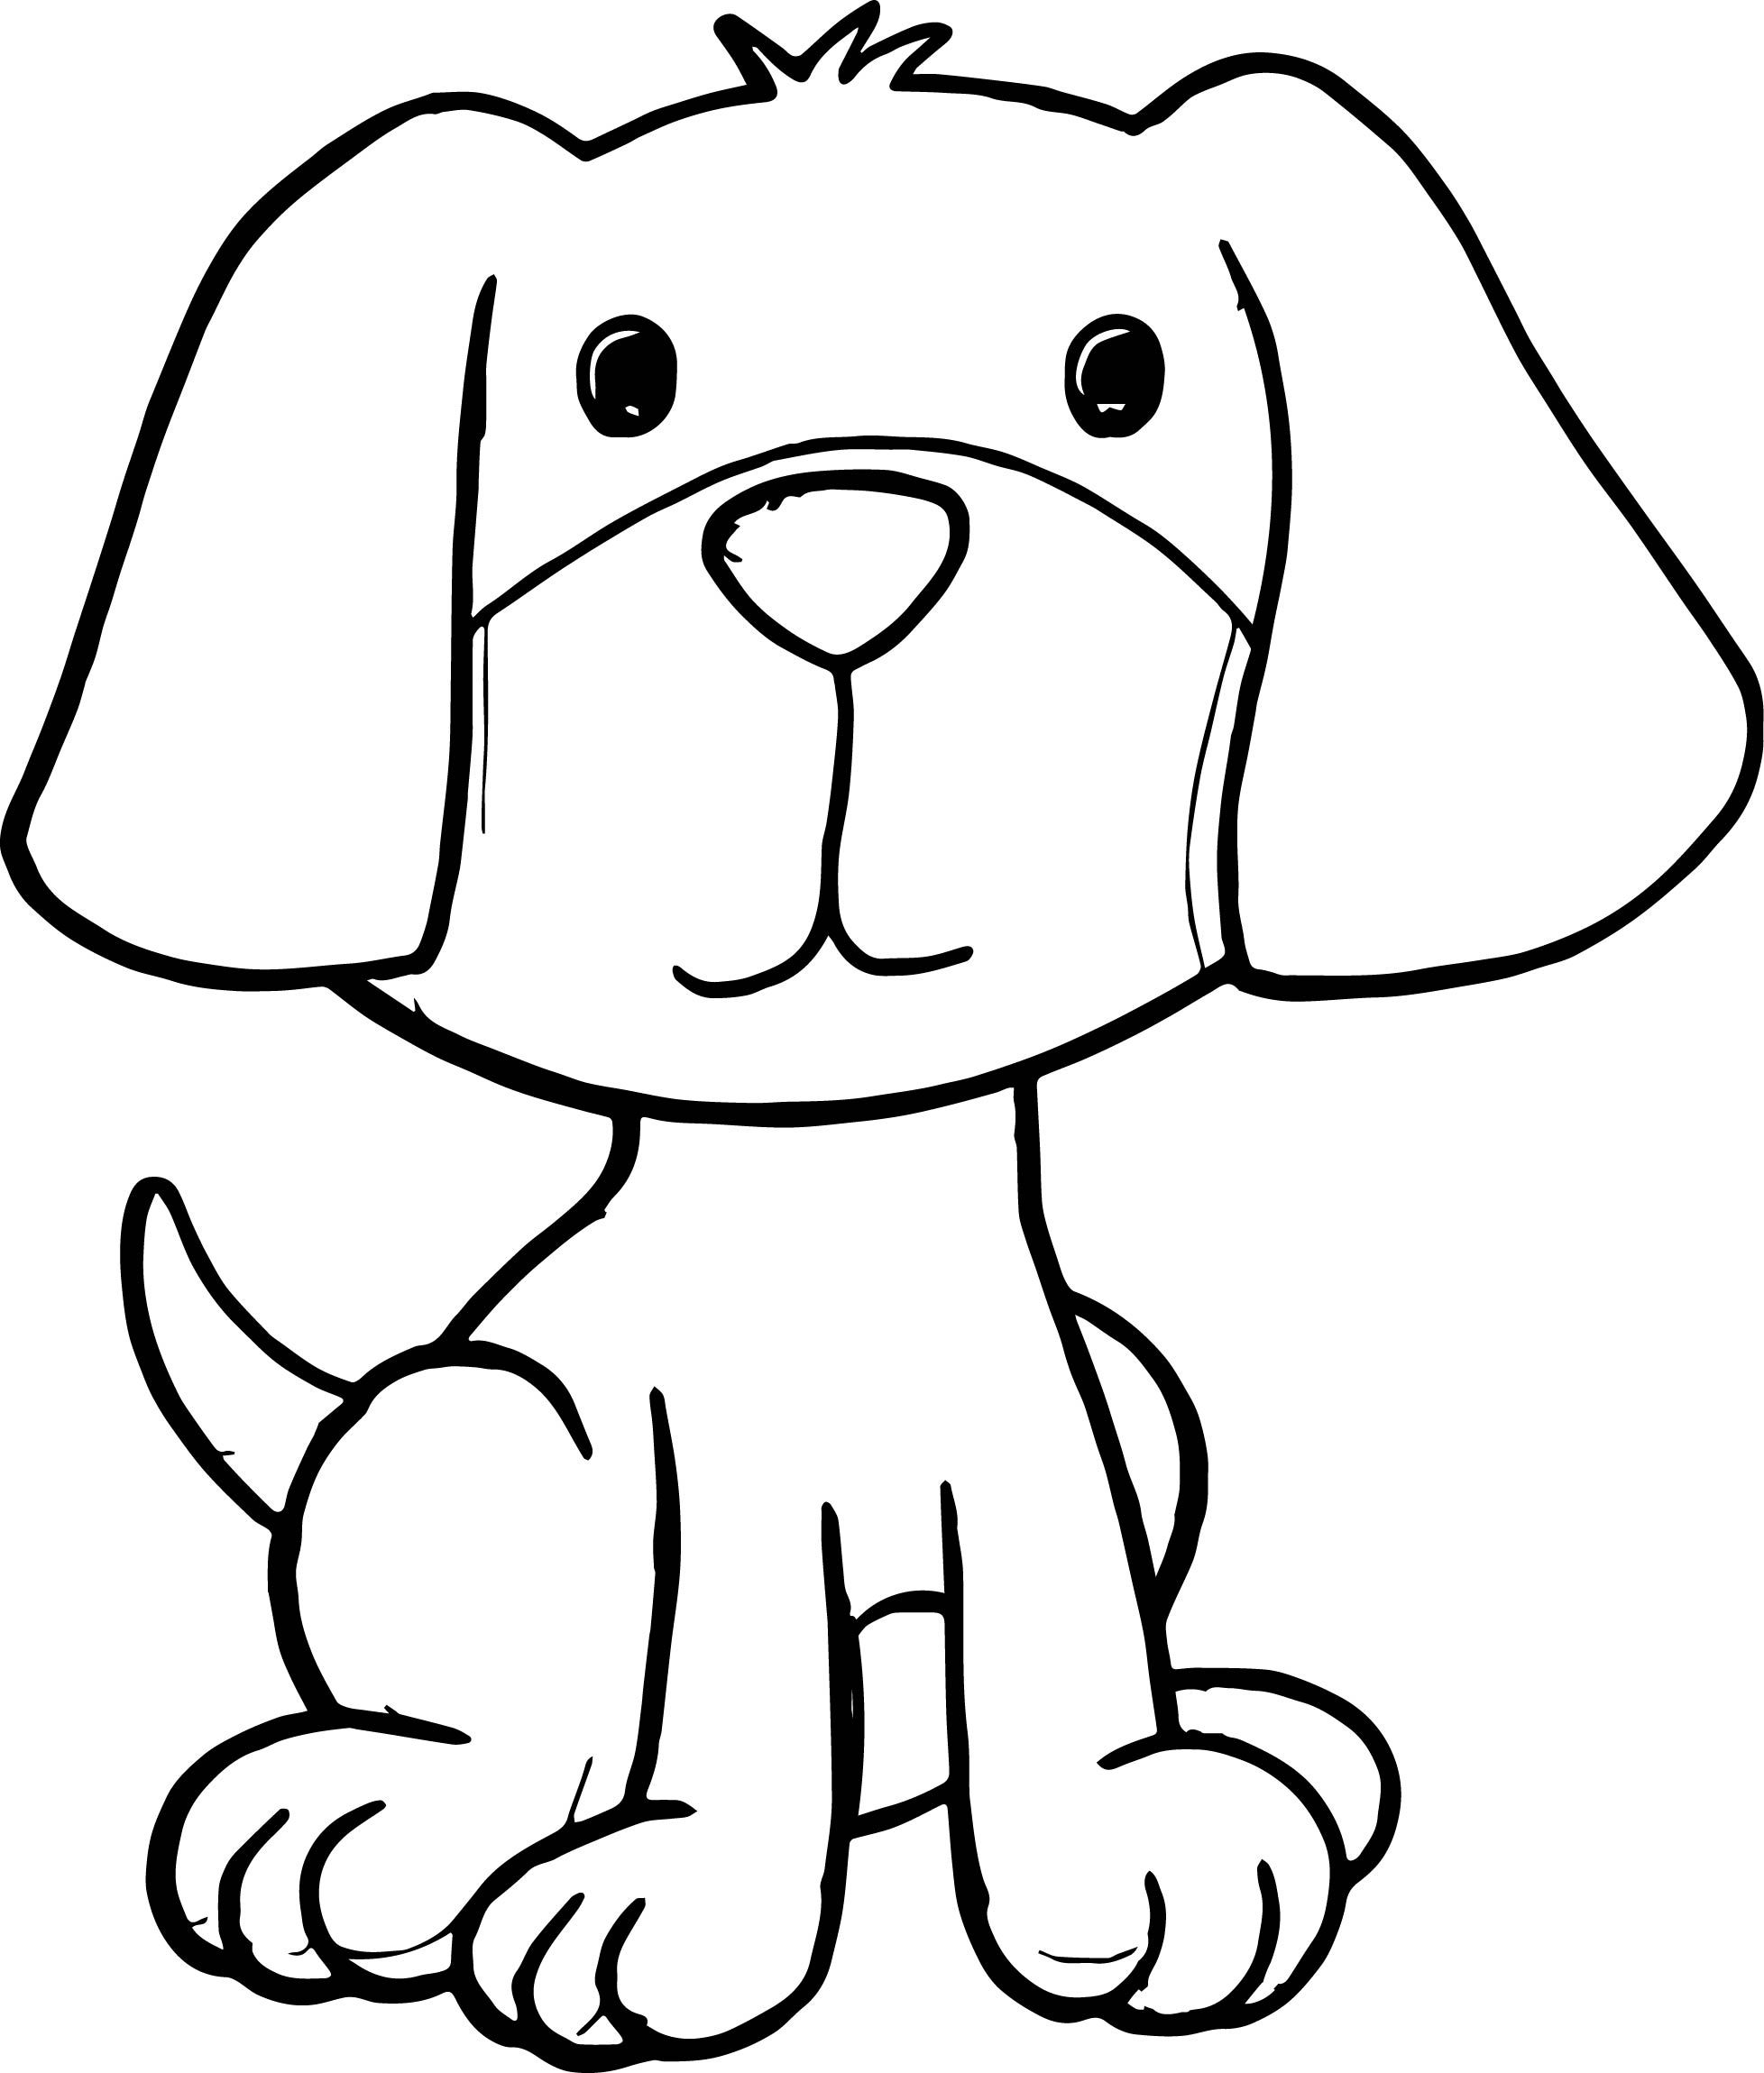 Cool Puppy Pictures Of Cute Cartoon Puppies Dog Puppy Coloring Page Puppy Cartoon Puppy Coloring Pages Dog Coloring Page